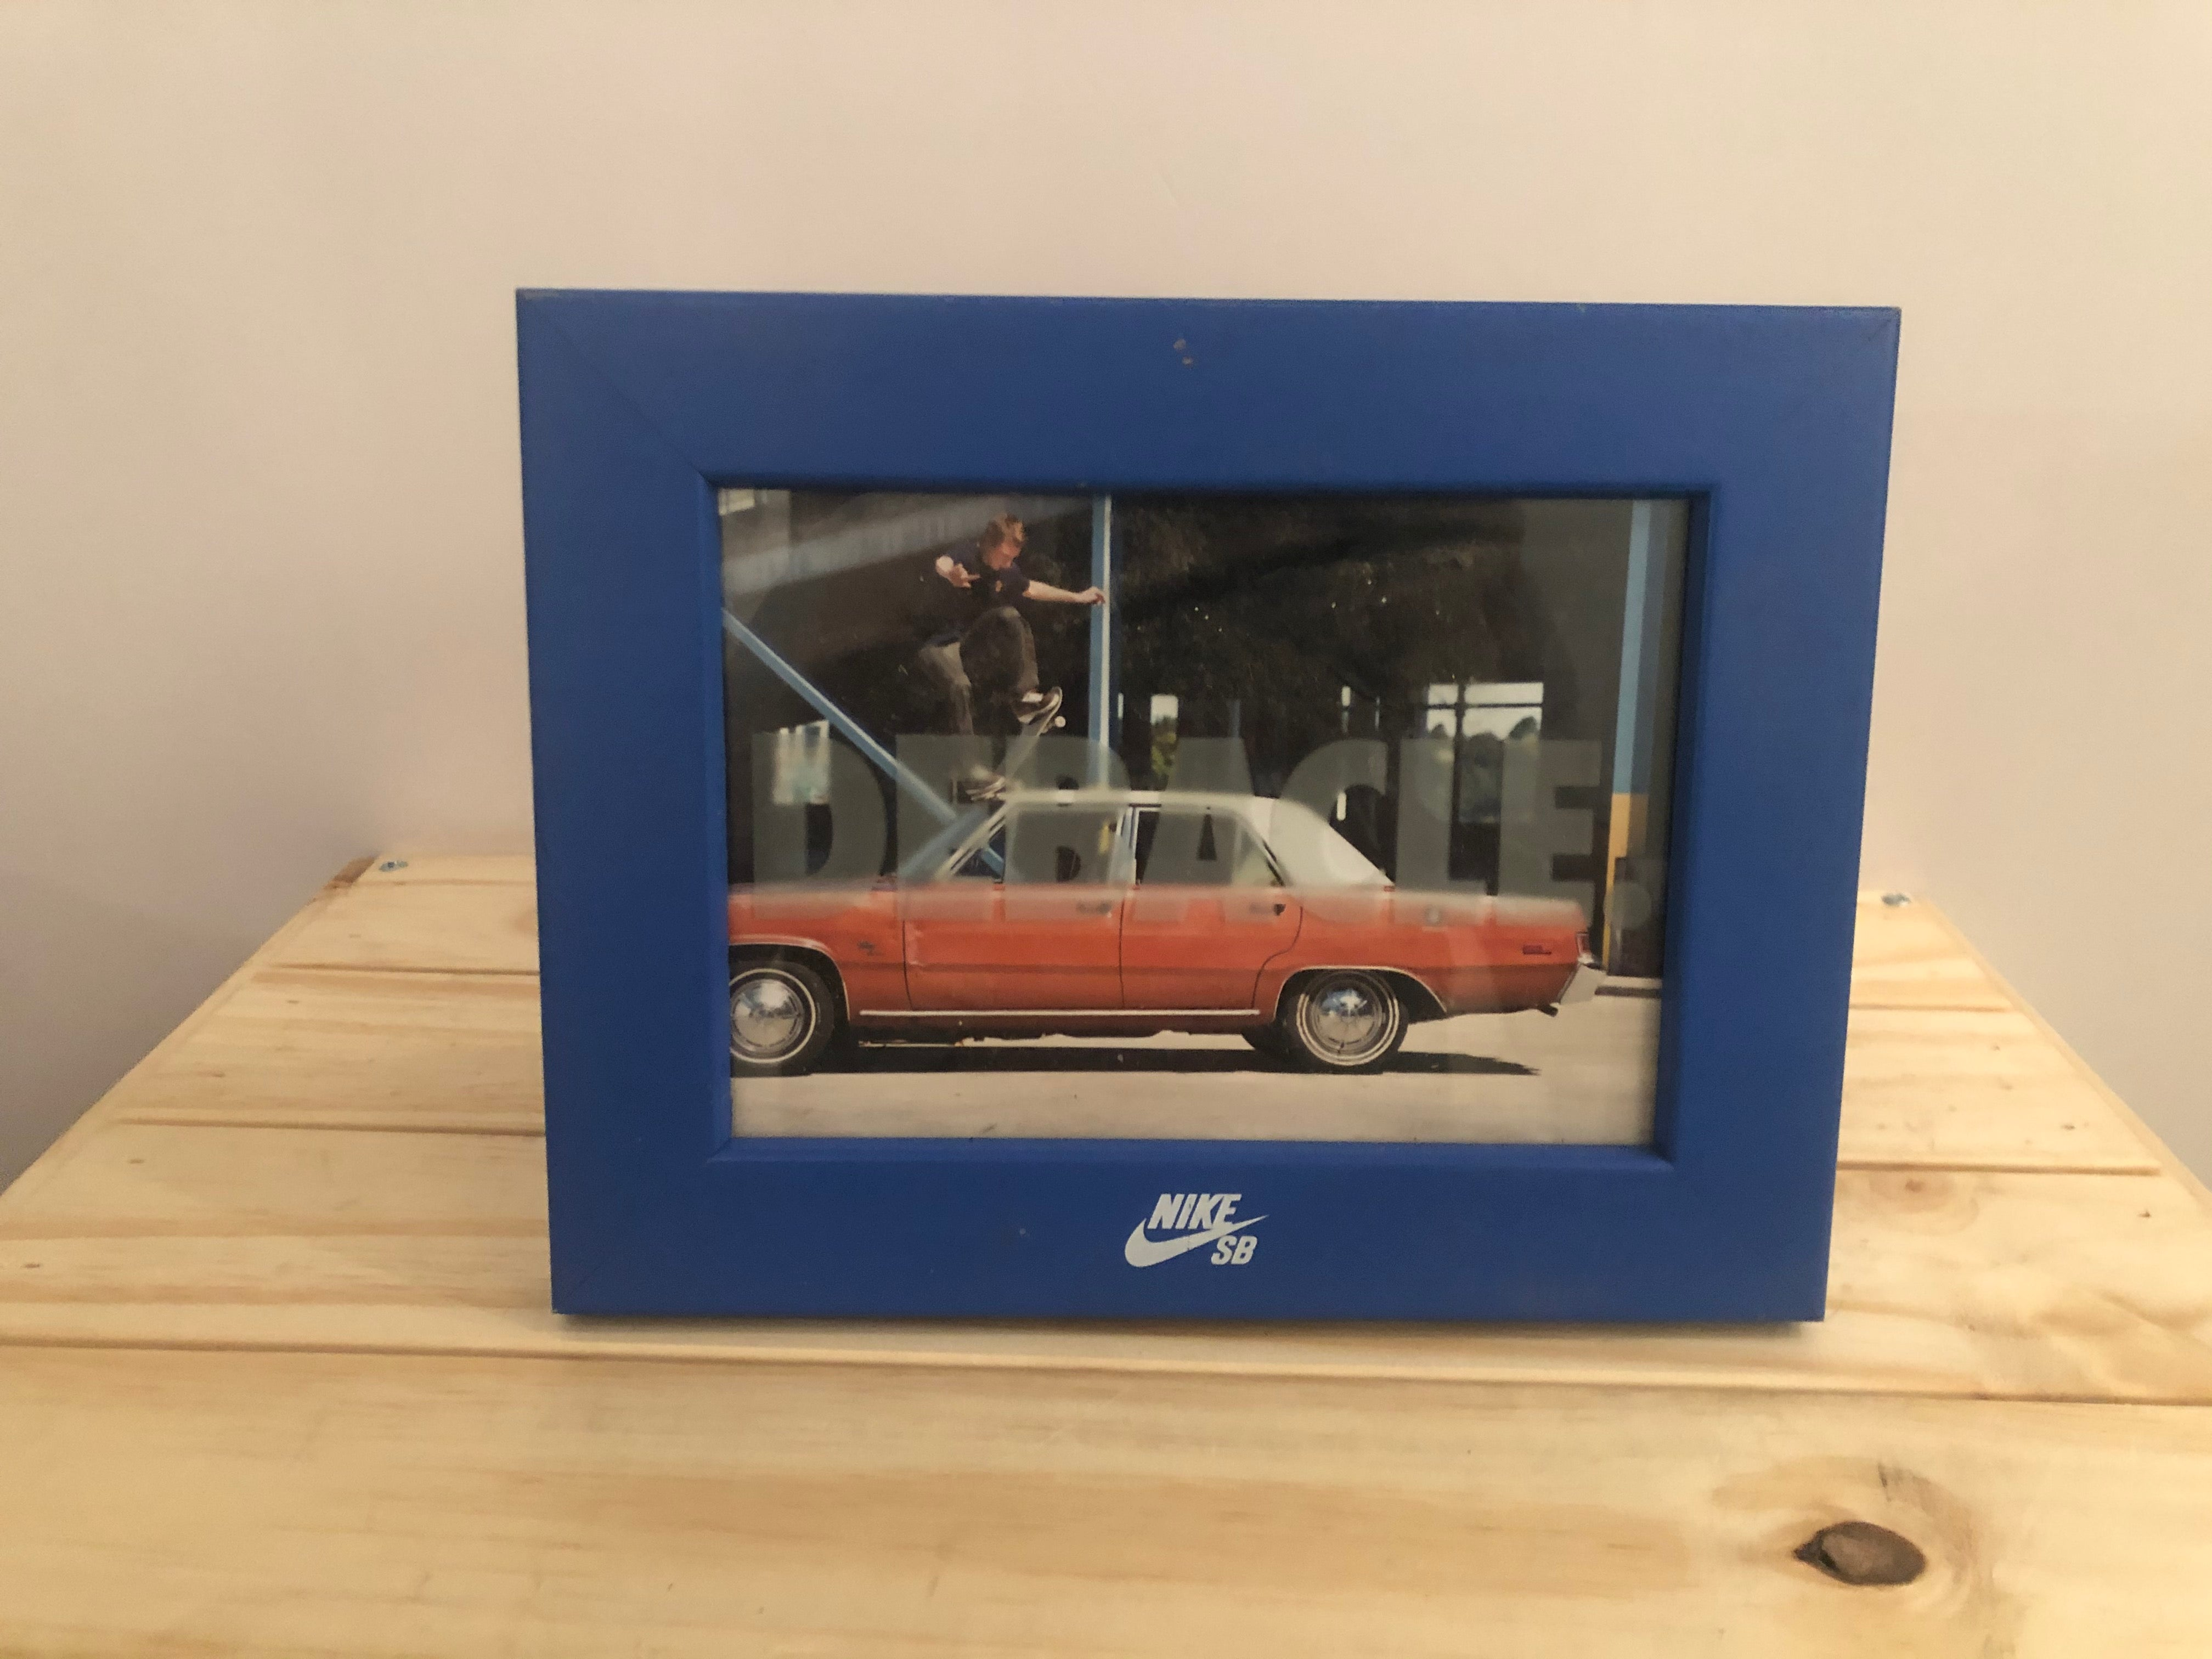 Nike SB Picture Frame